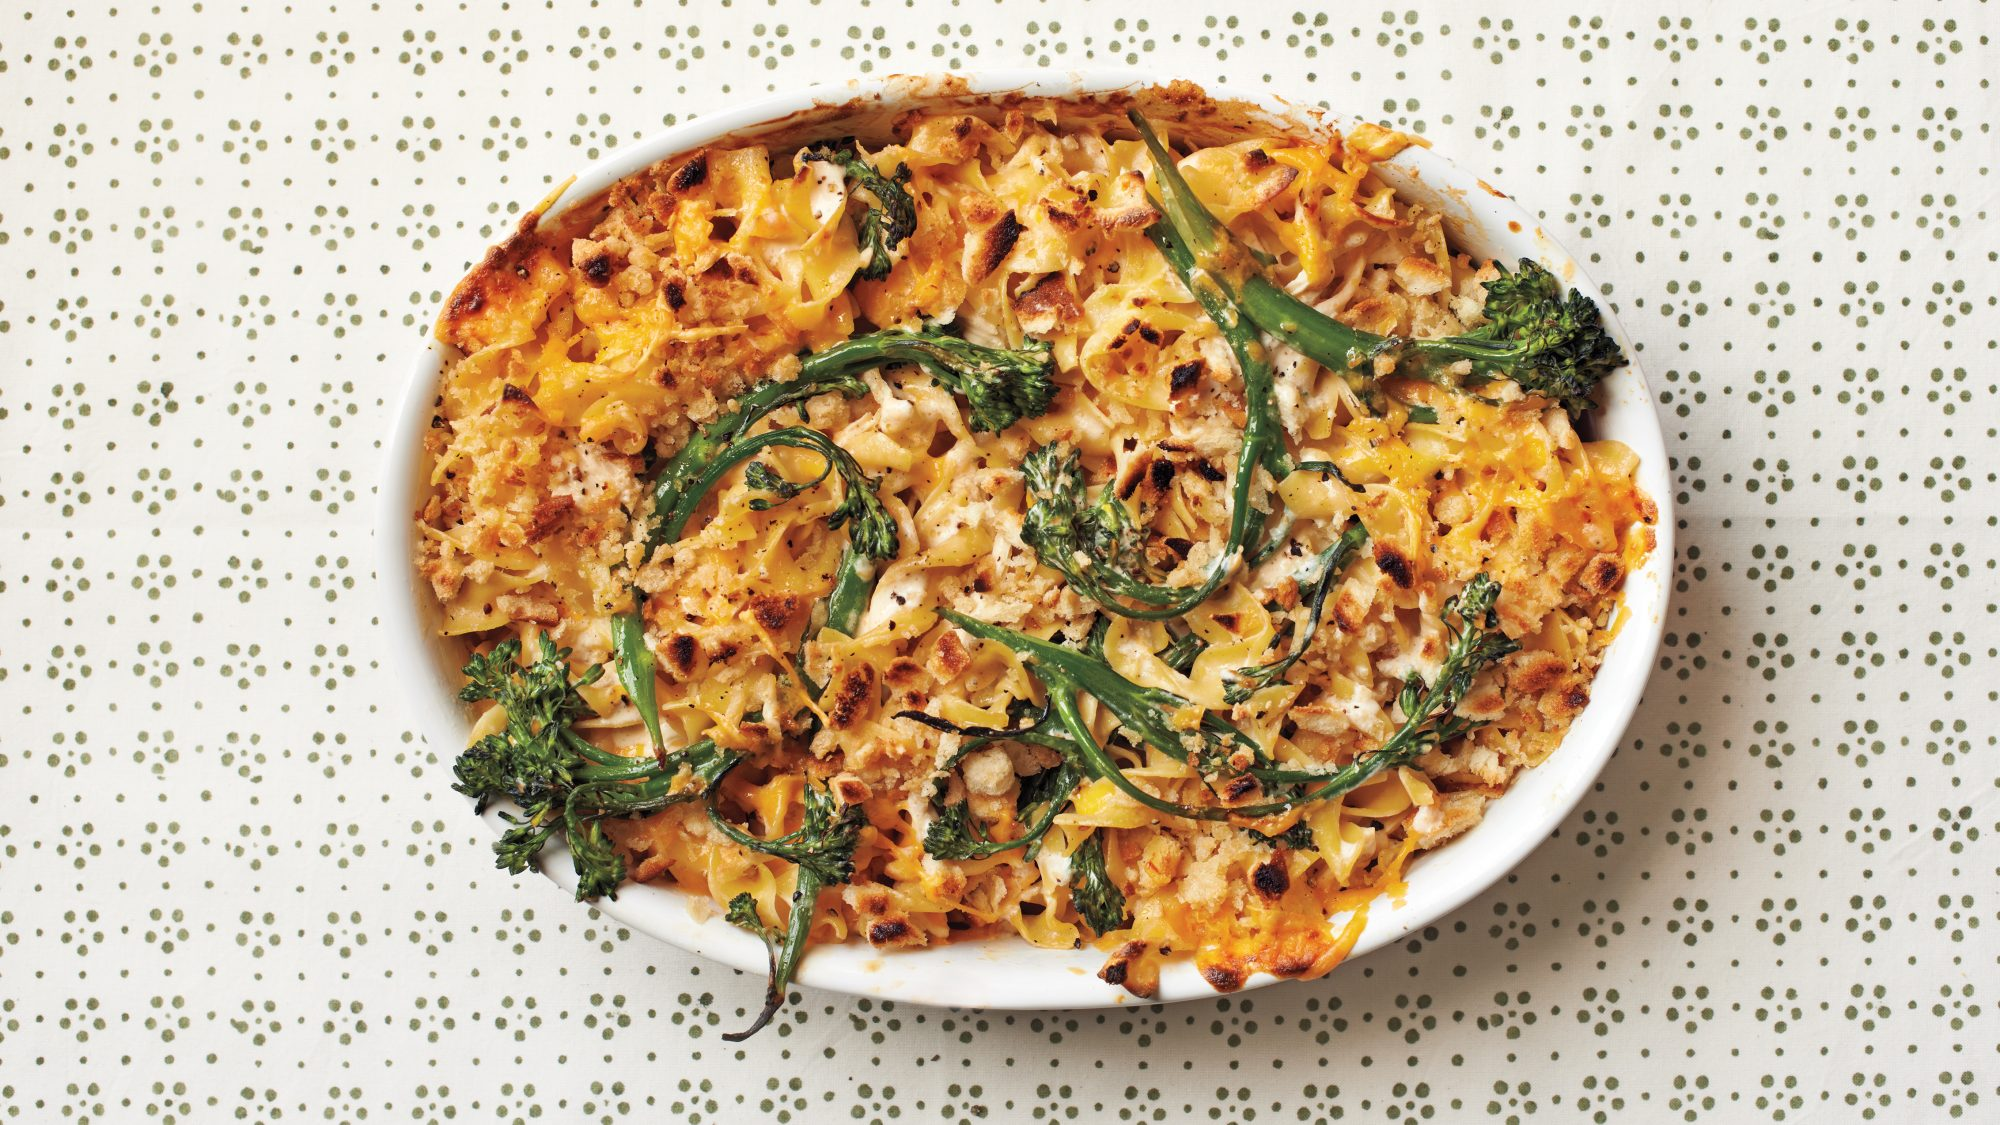 Chicken-and-Broccolini Mac and Cheese